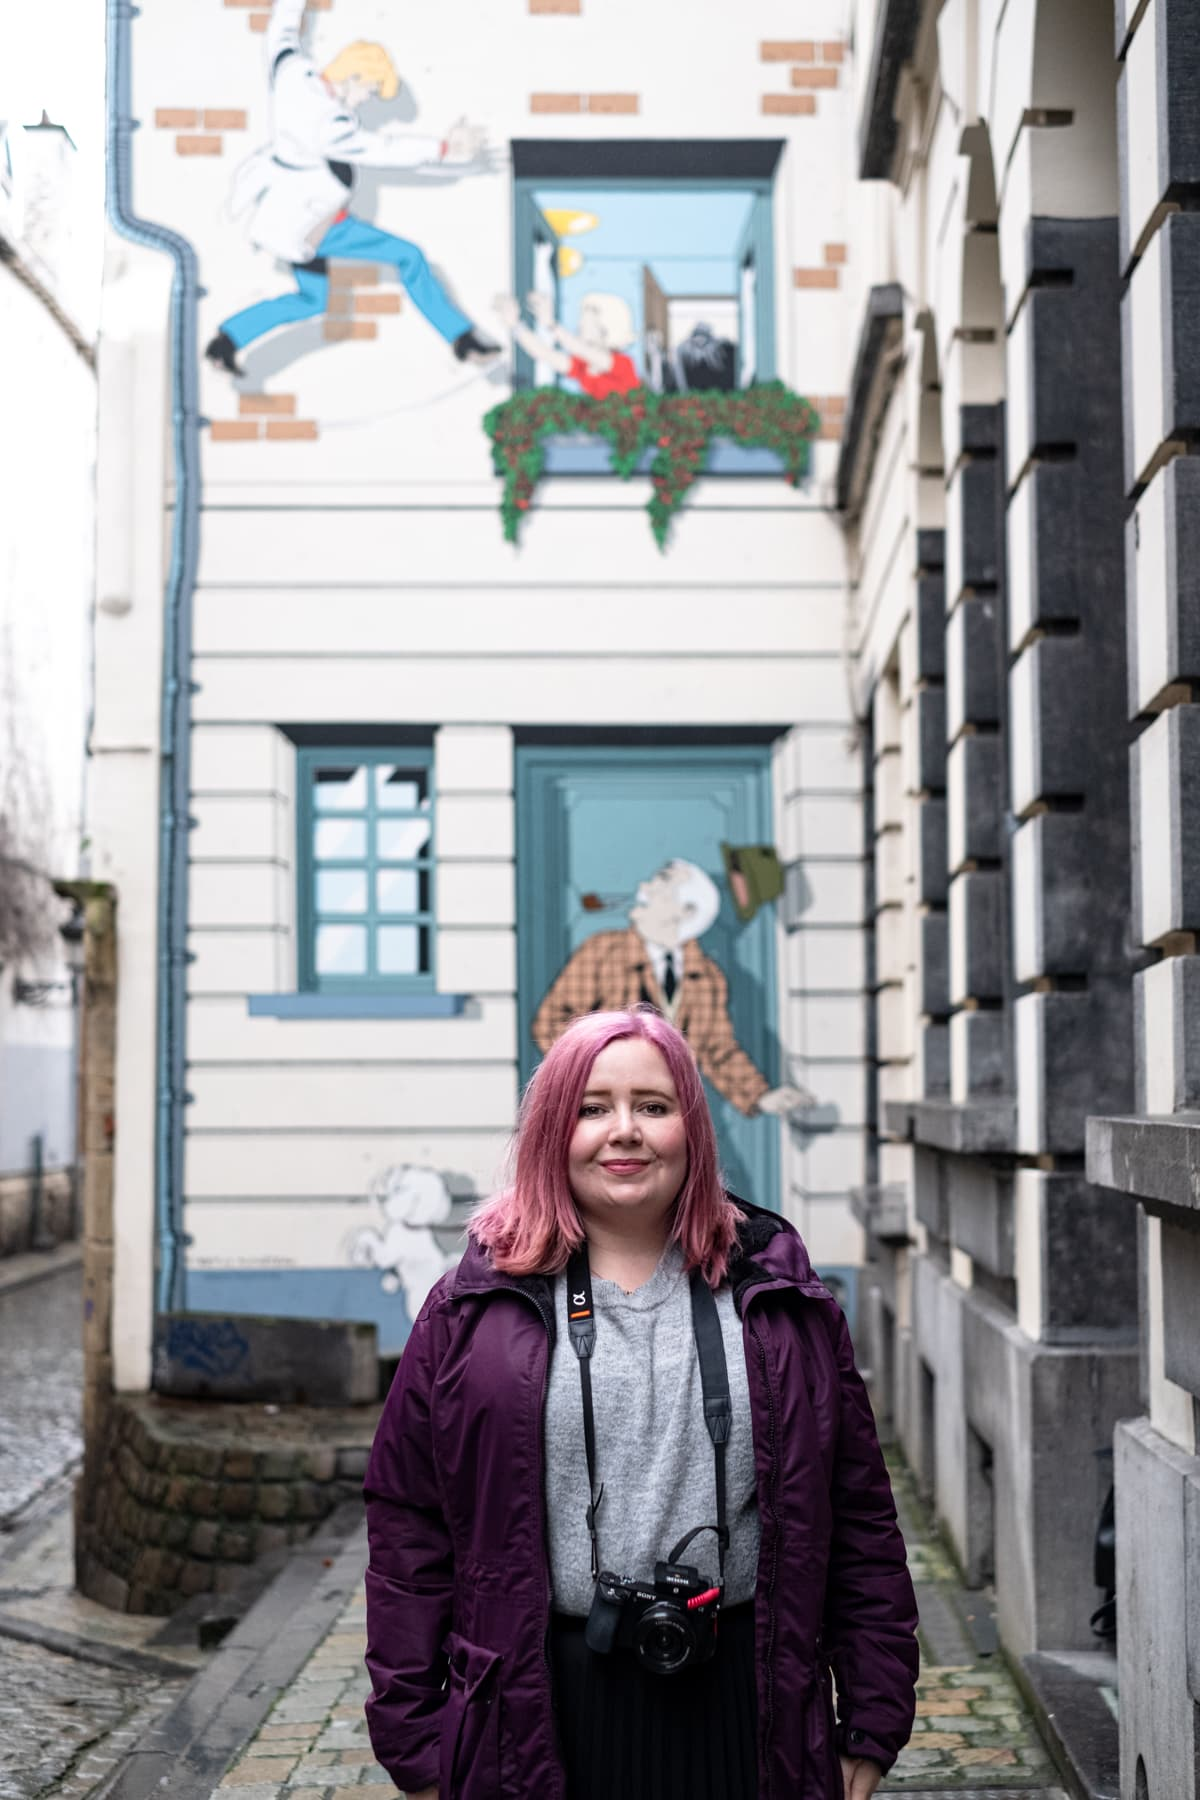 Kat next to Comic Book Strip in Brussels